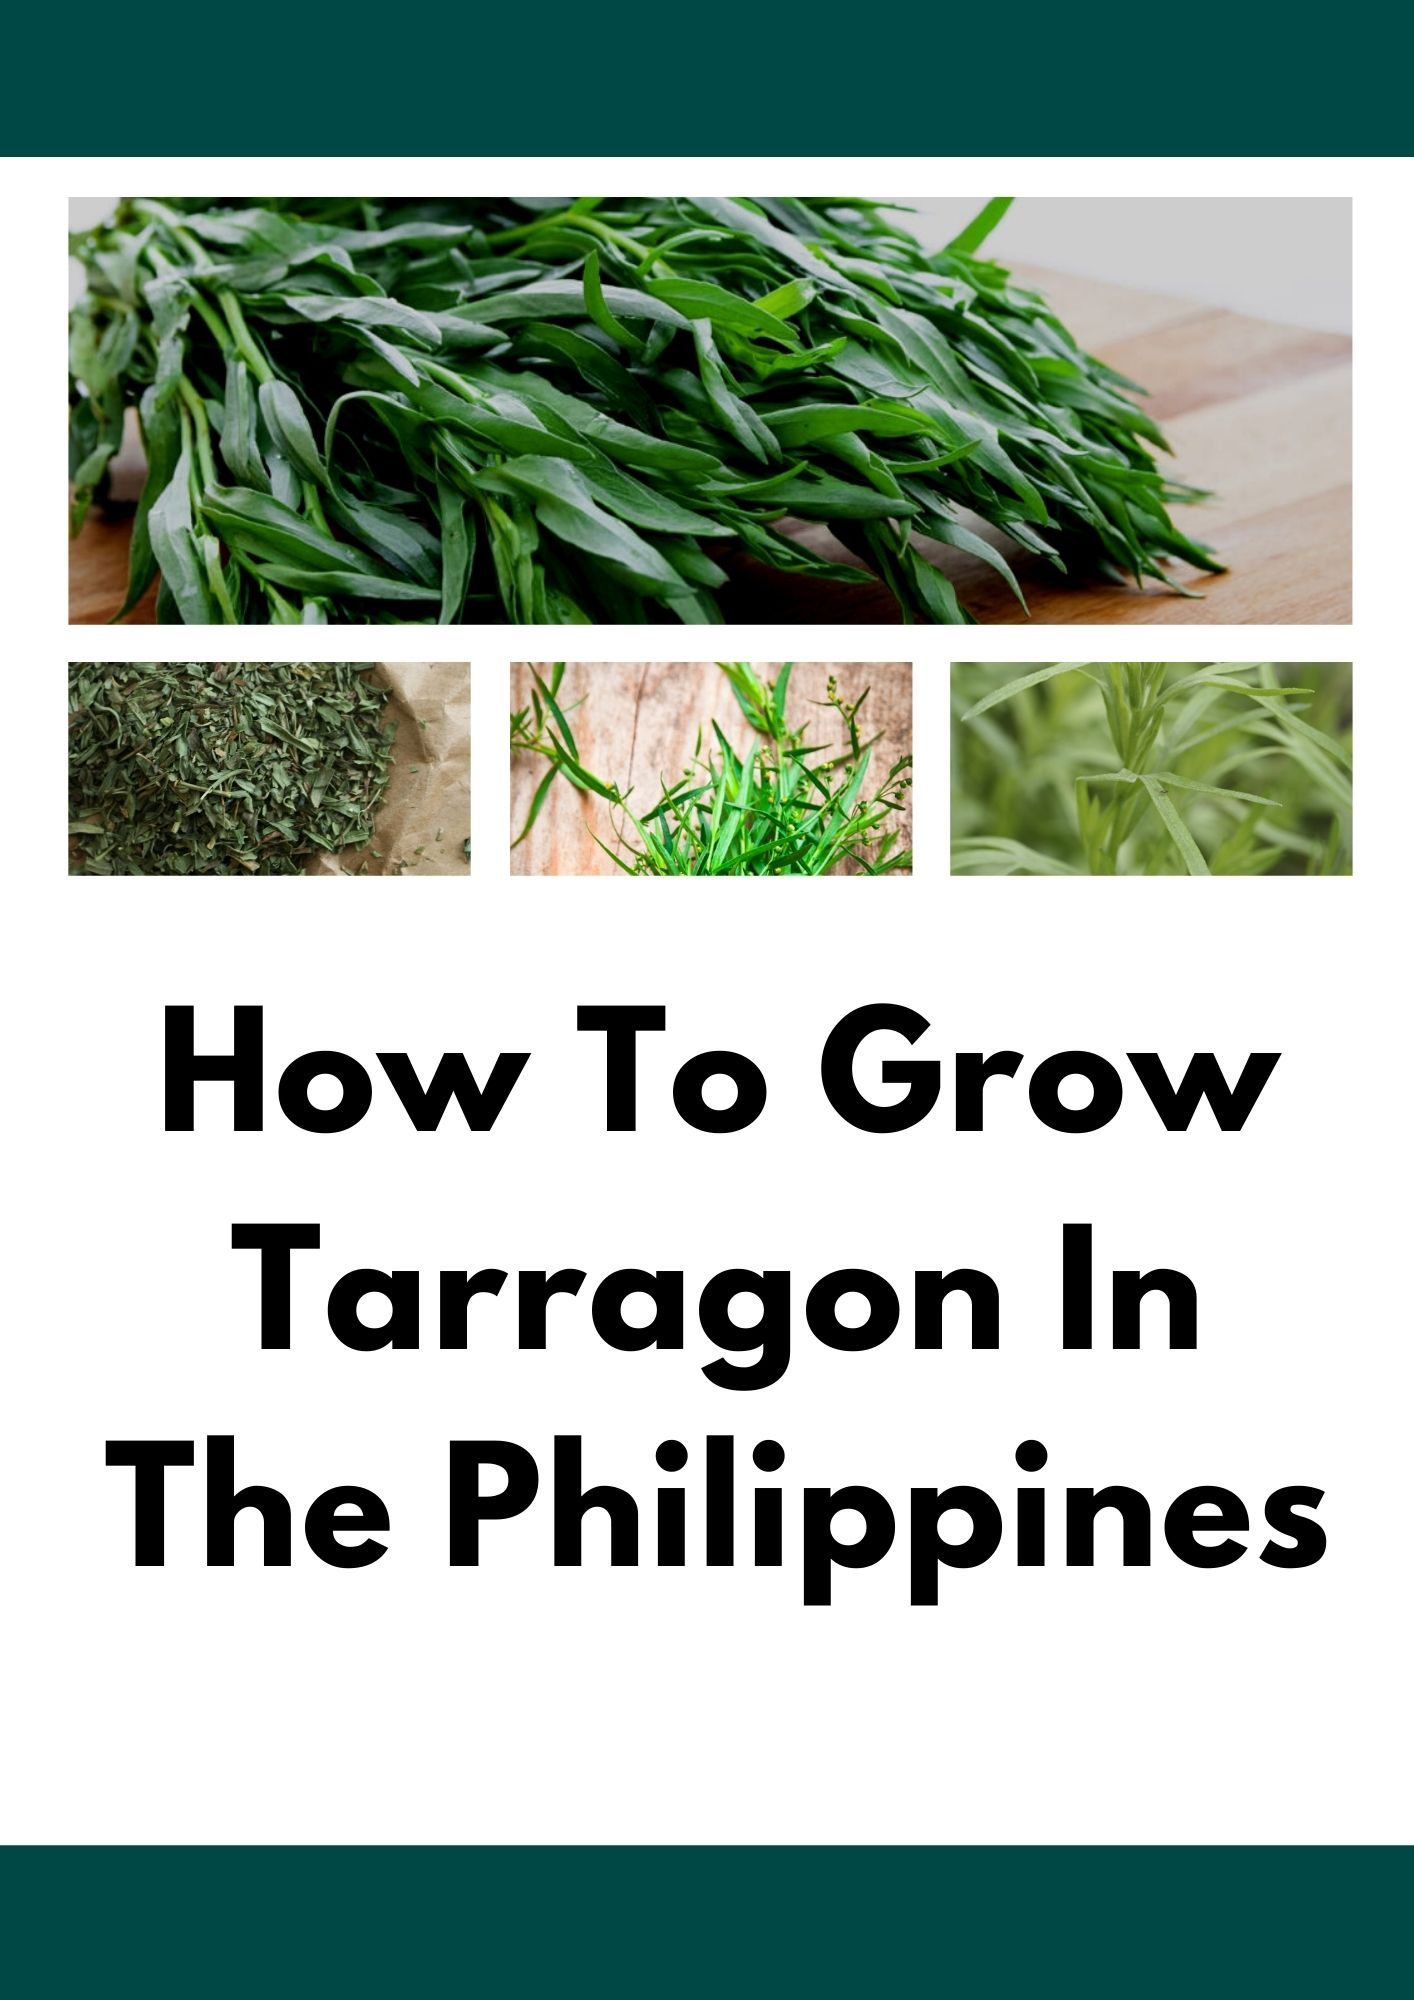 How To Grow Tarragon In The Philippines   Detailed Article